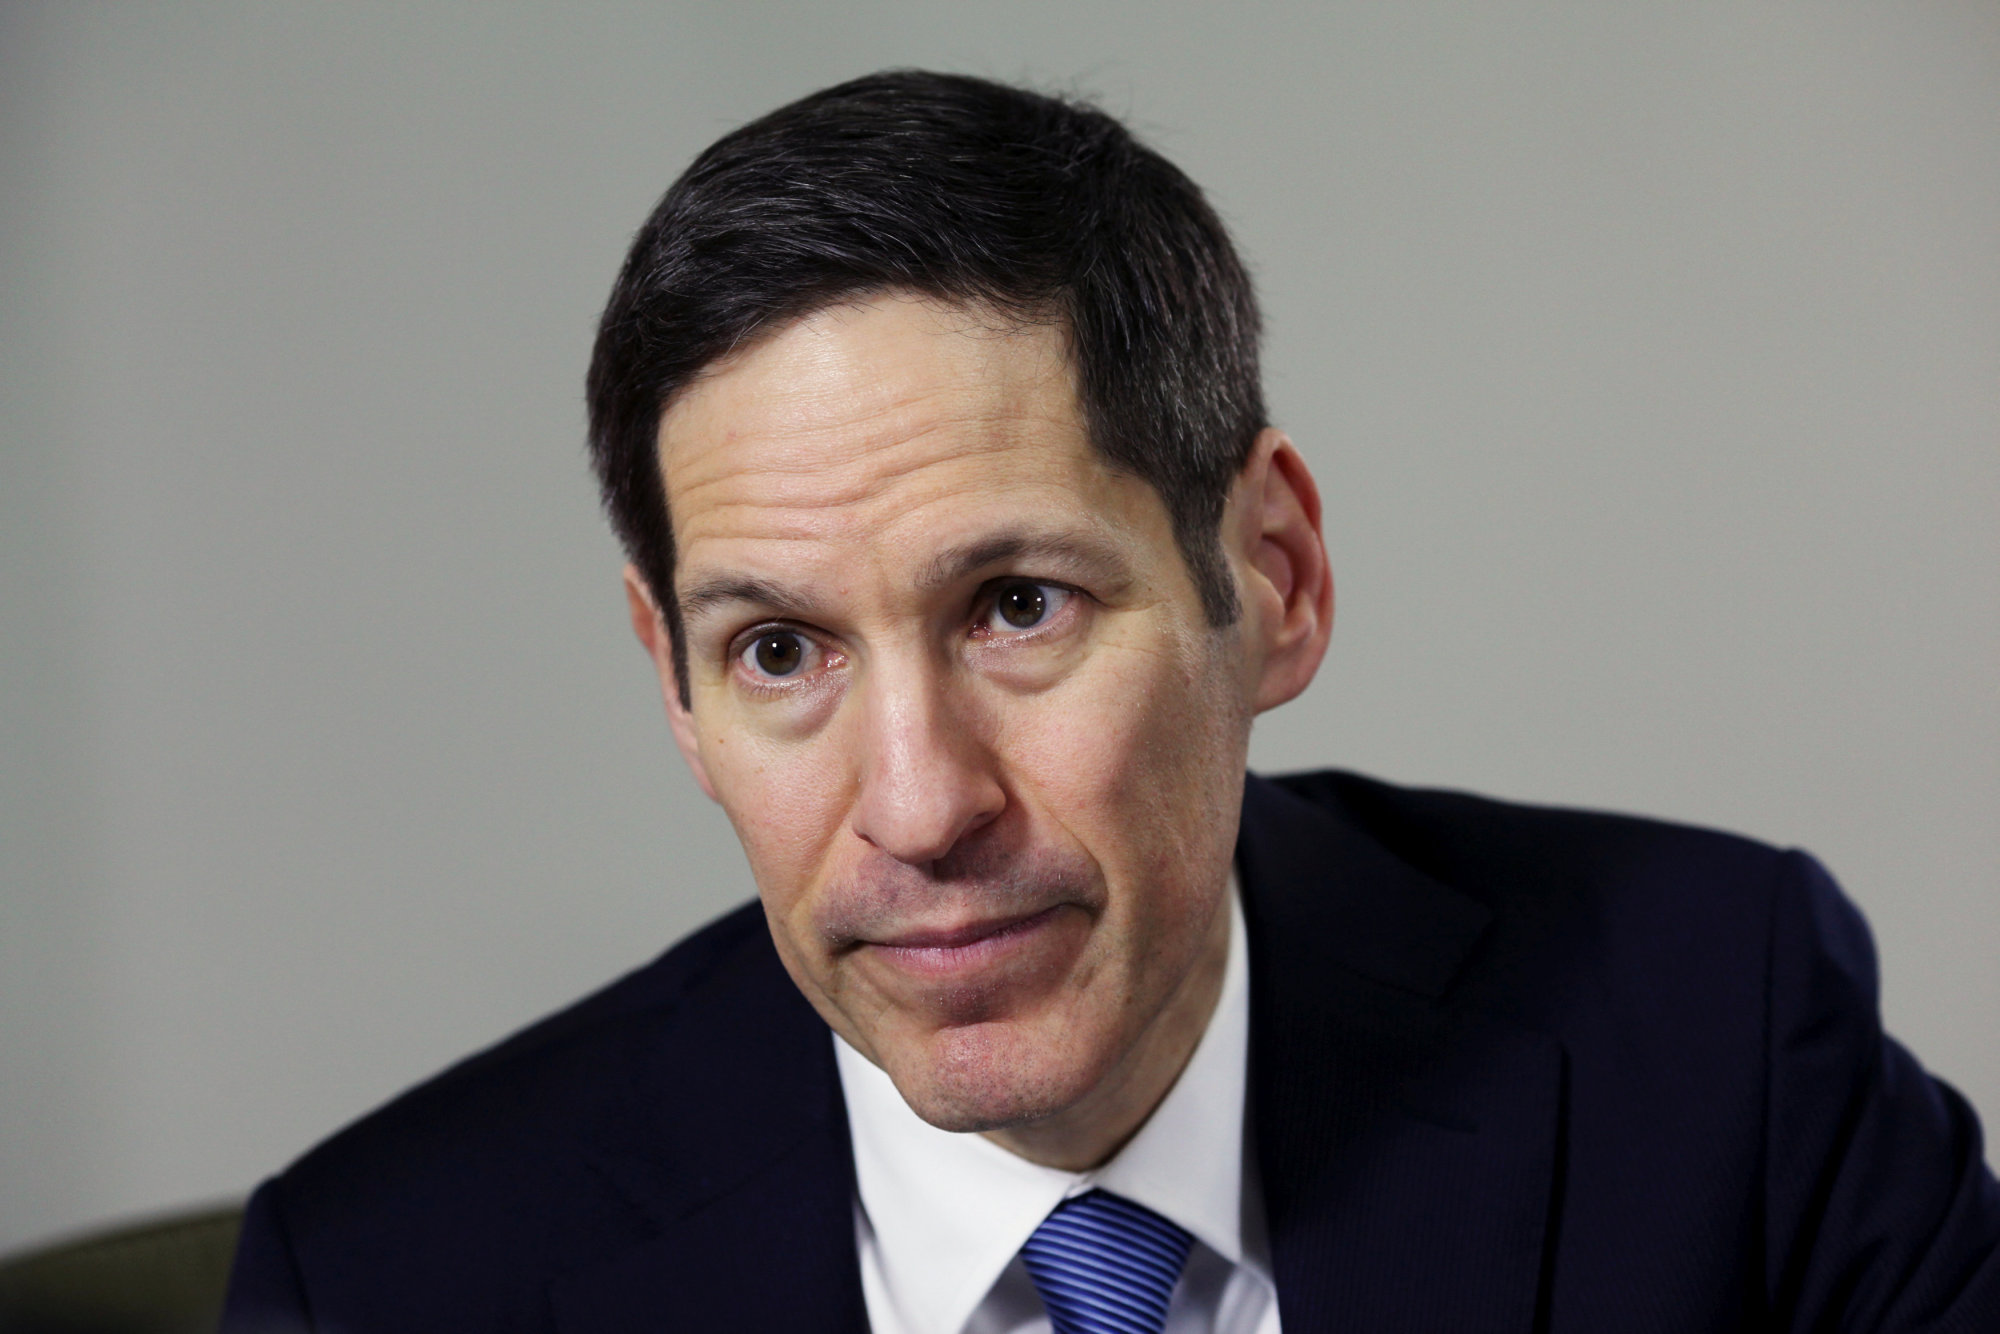 U.S. Centers for Disease Control and Prevention Director Thomas Frieden is interviewed at the Puerto Rico Health Department in San Juan on March 8. | REUTERS